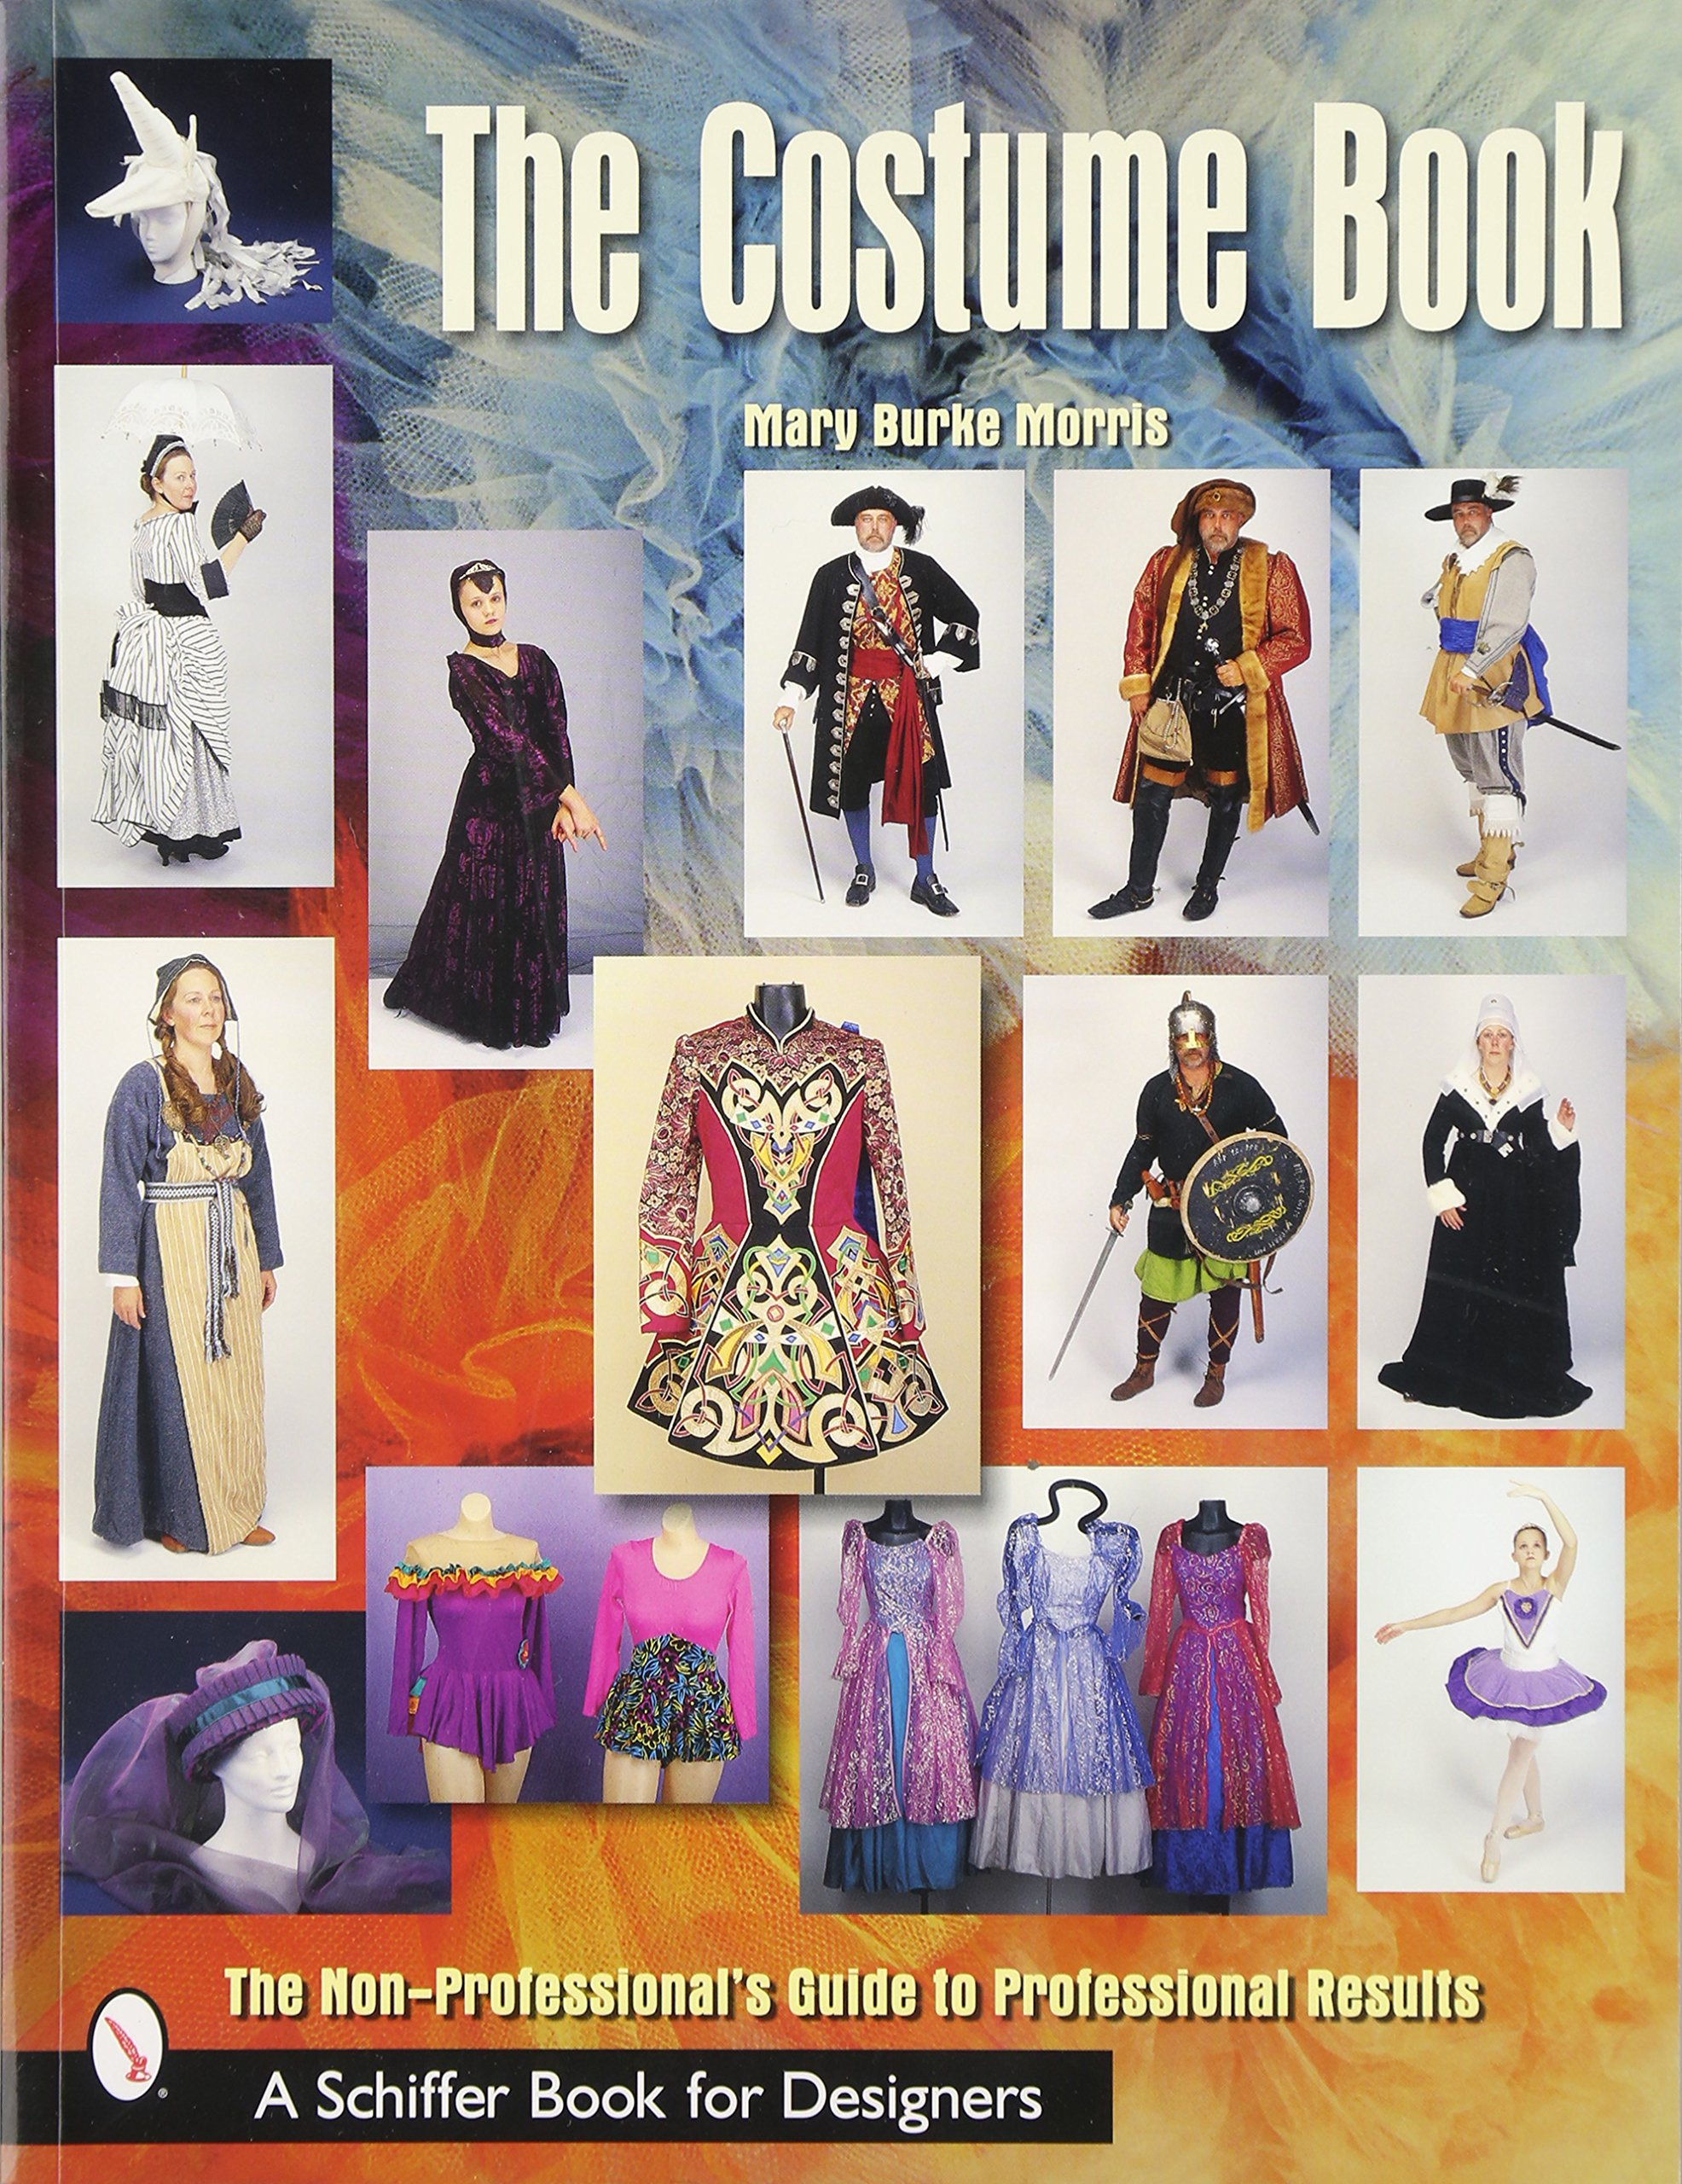 The Costume Book: The Non-Professional's Guide to Professional Results (Schiffer  Book for Designers): Mary Burke Morris: 9780764314858: Amazon.com: Books